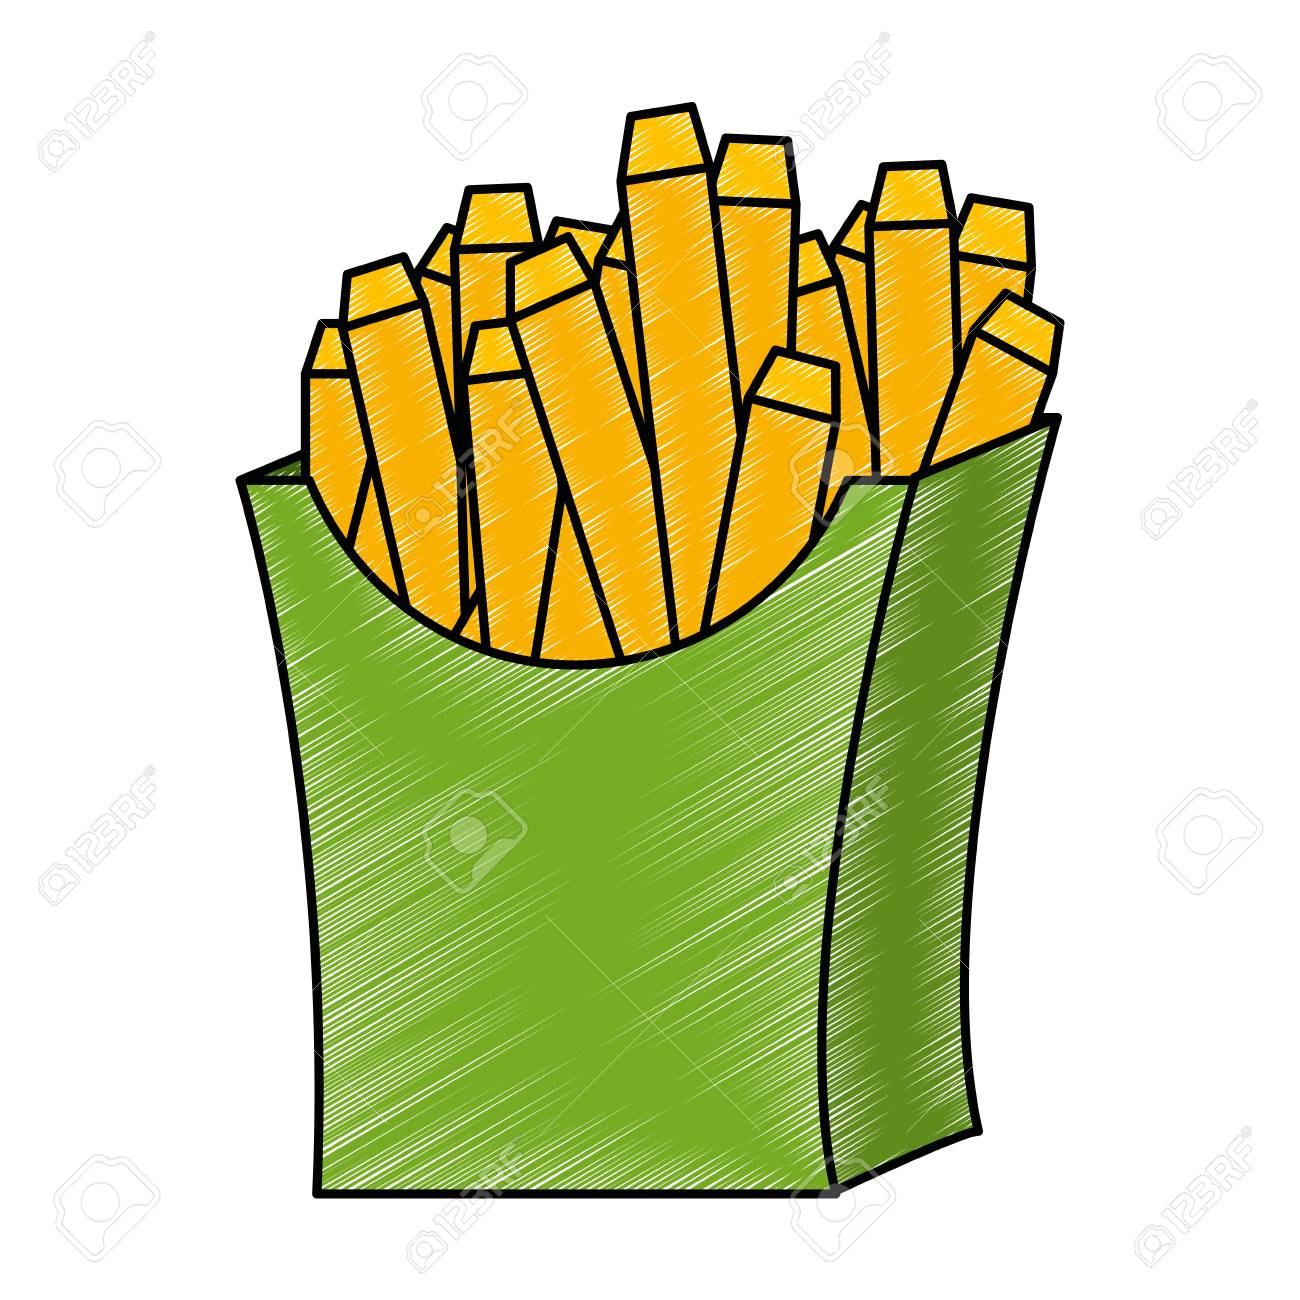 delicious french fries icon vector illustration design - 111928274